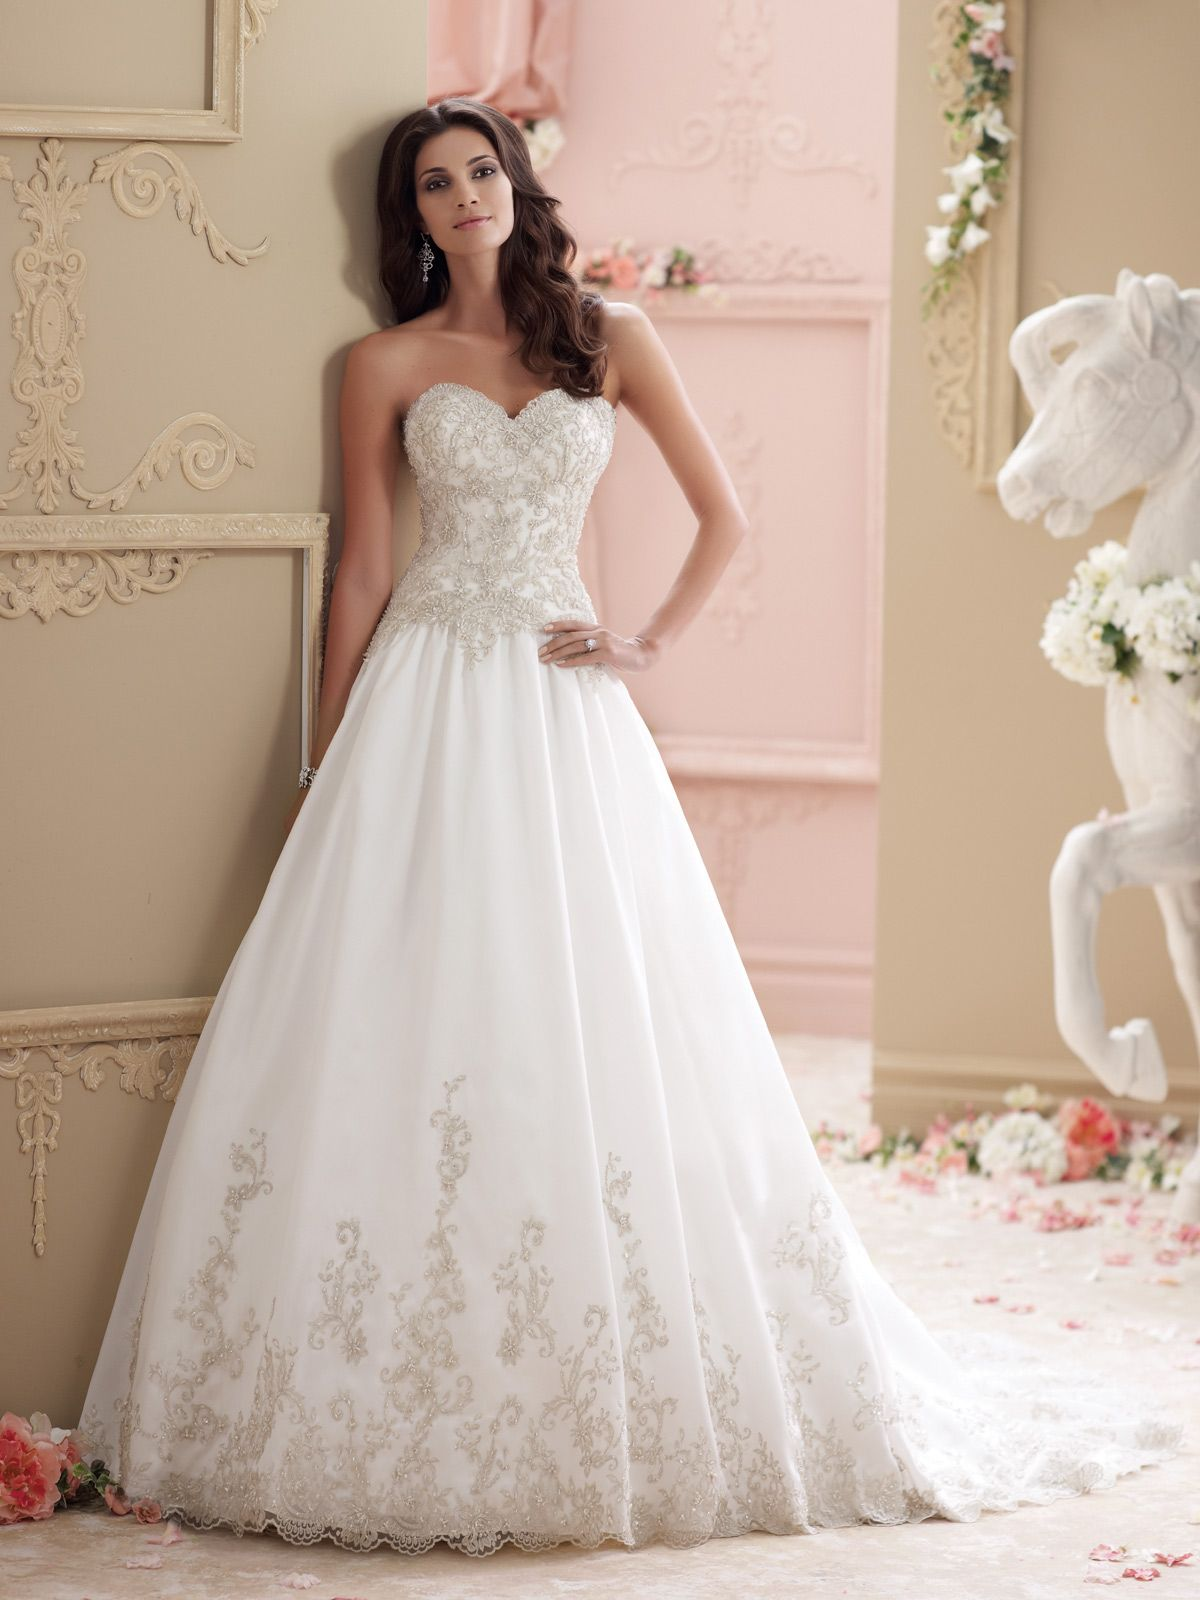 Style 115238, Wynter is a beautiful strapless organza ball gown wedding dress designed by David Tutera for Mon Cheri. Click for more information